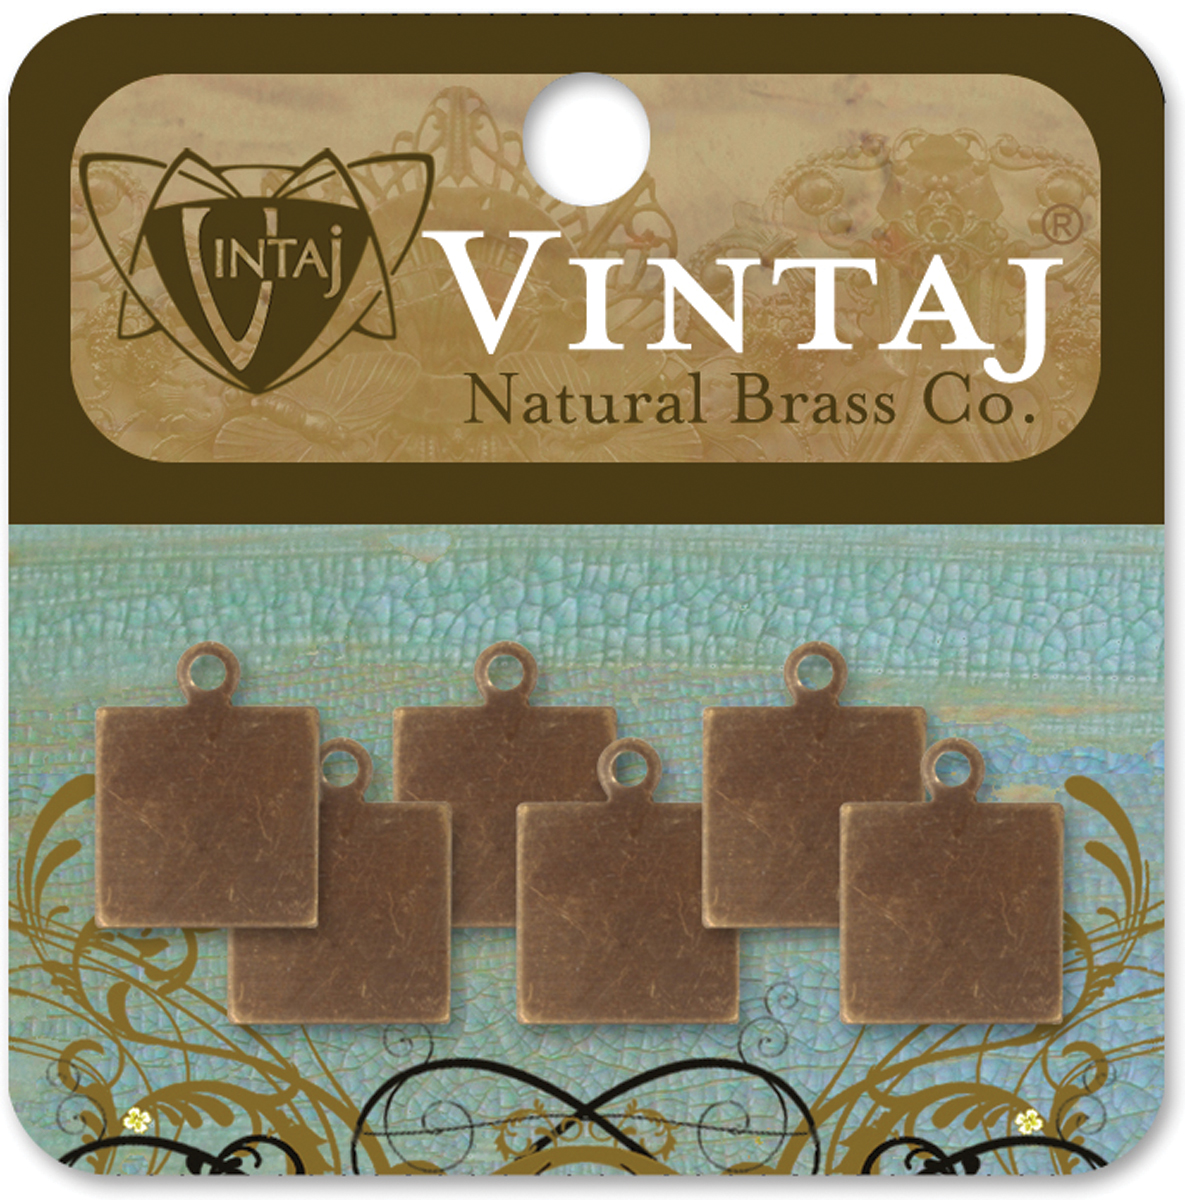 Vintaj Metal Altered Blanks 6pk, Square Tag, 9mm